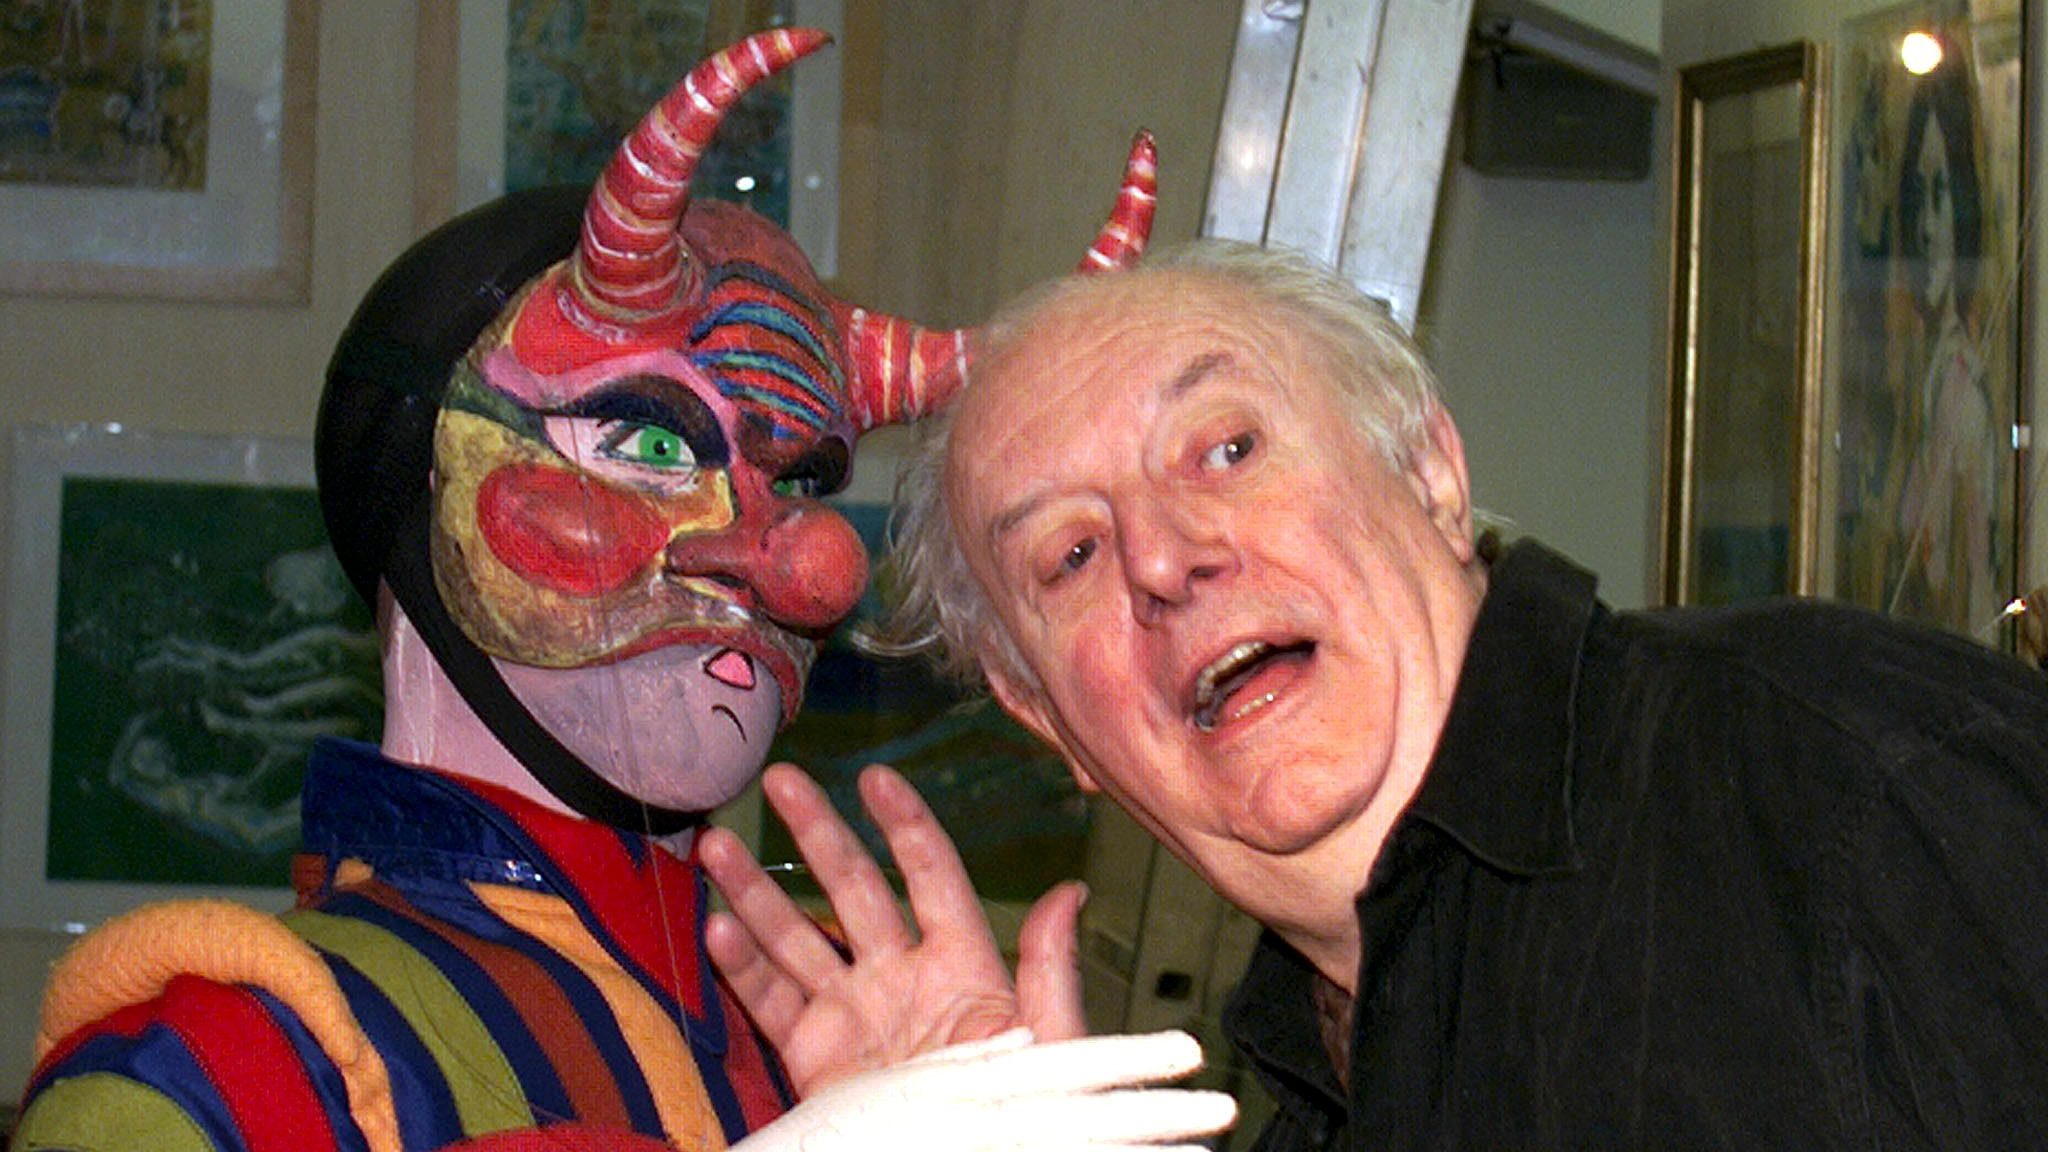 """Nobel Literature laureate Dario Fo photographed at Rome's Ateneo Theatre during the presentation of """"Pupazzi con rabbia e sentimento"""" (Puppets with rage and feeling) exhibition on Monday 29 November, 1999. The event represents Dario Fo's and his wife Franca Rame's 60 years of theatre works."""